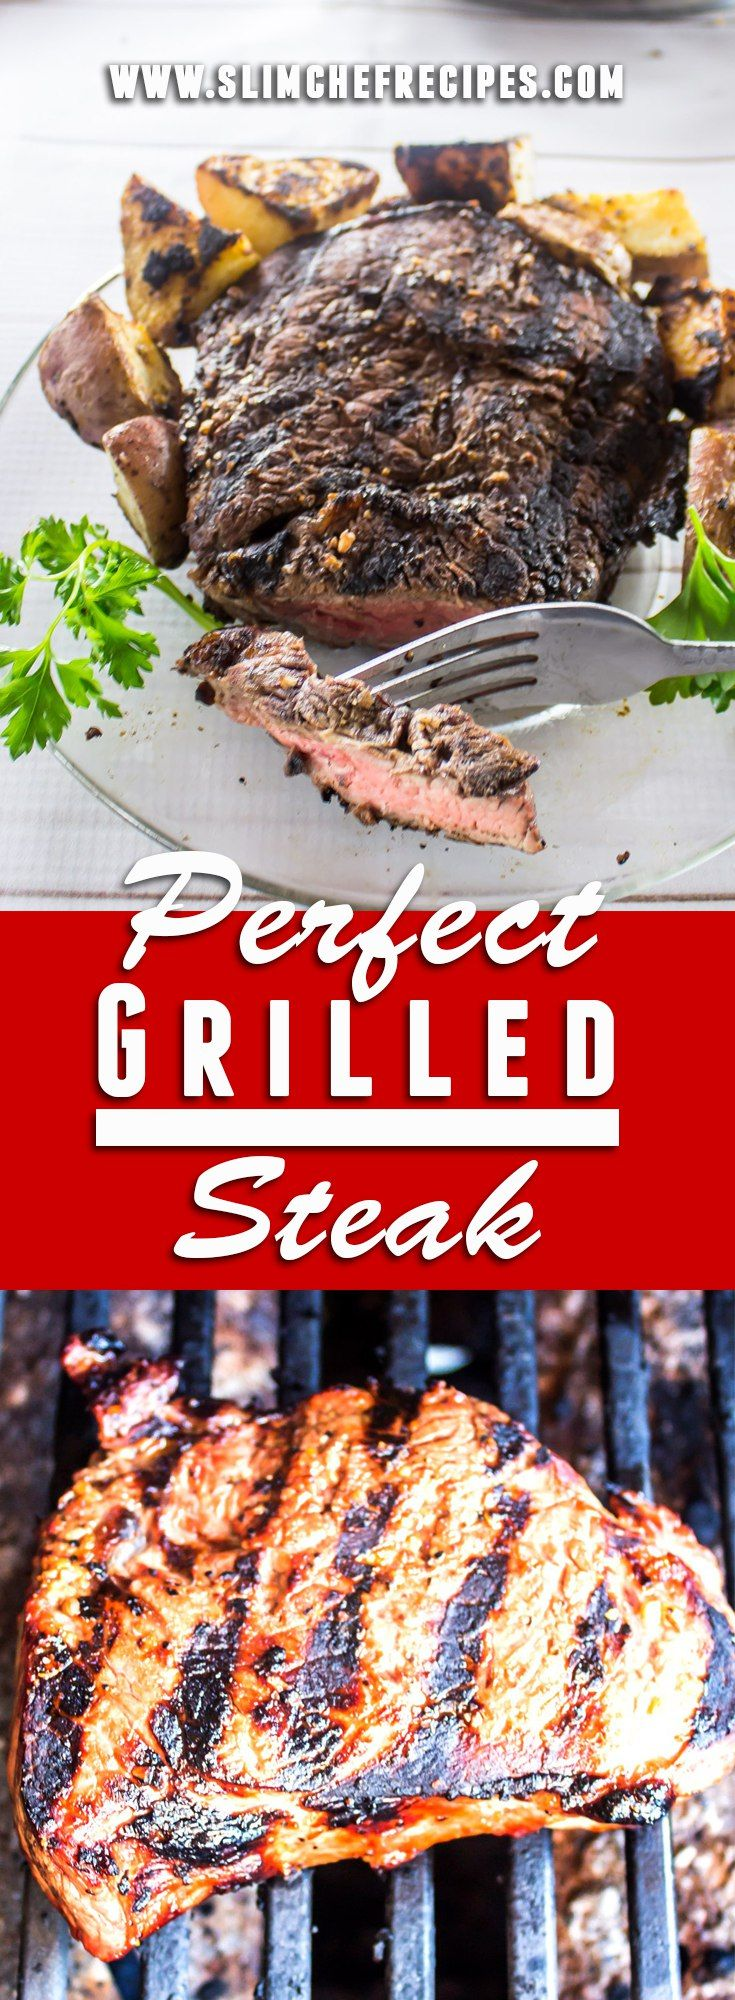 how to grill top sirloin steak on charcoal